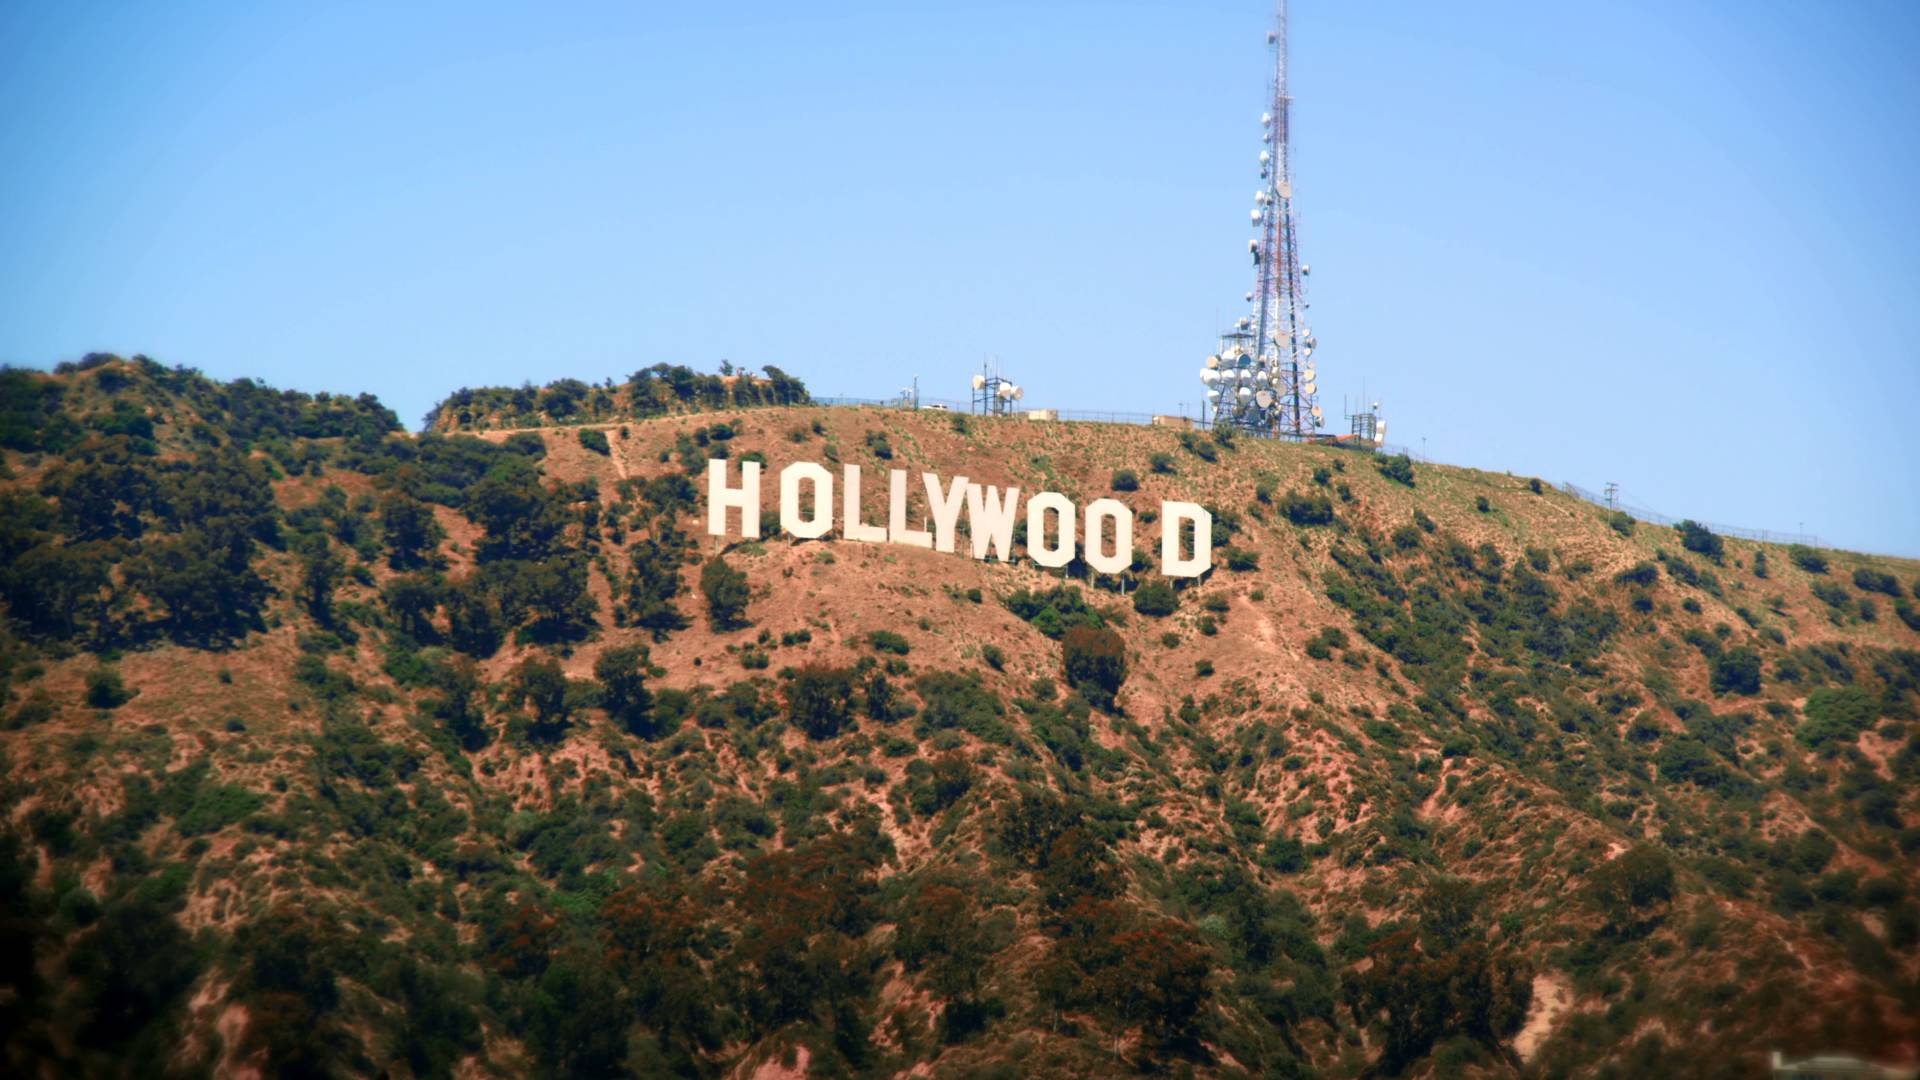 wallpapers a hollywood - photo #9